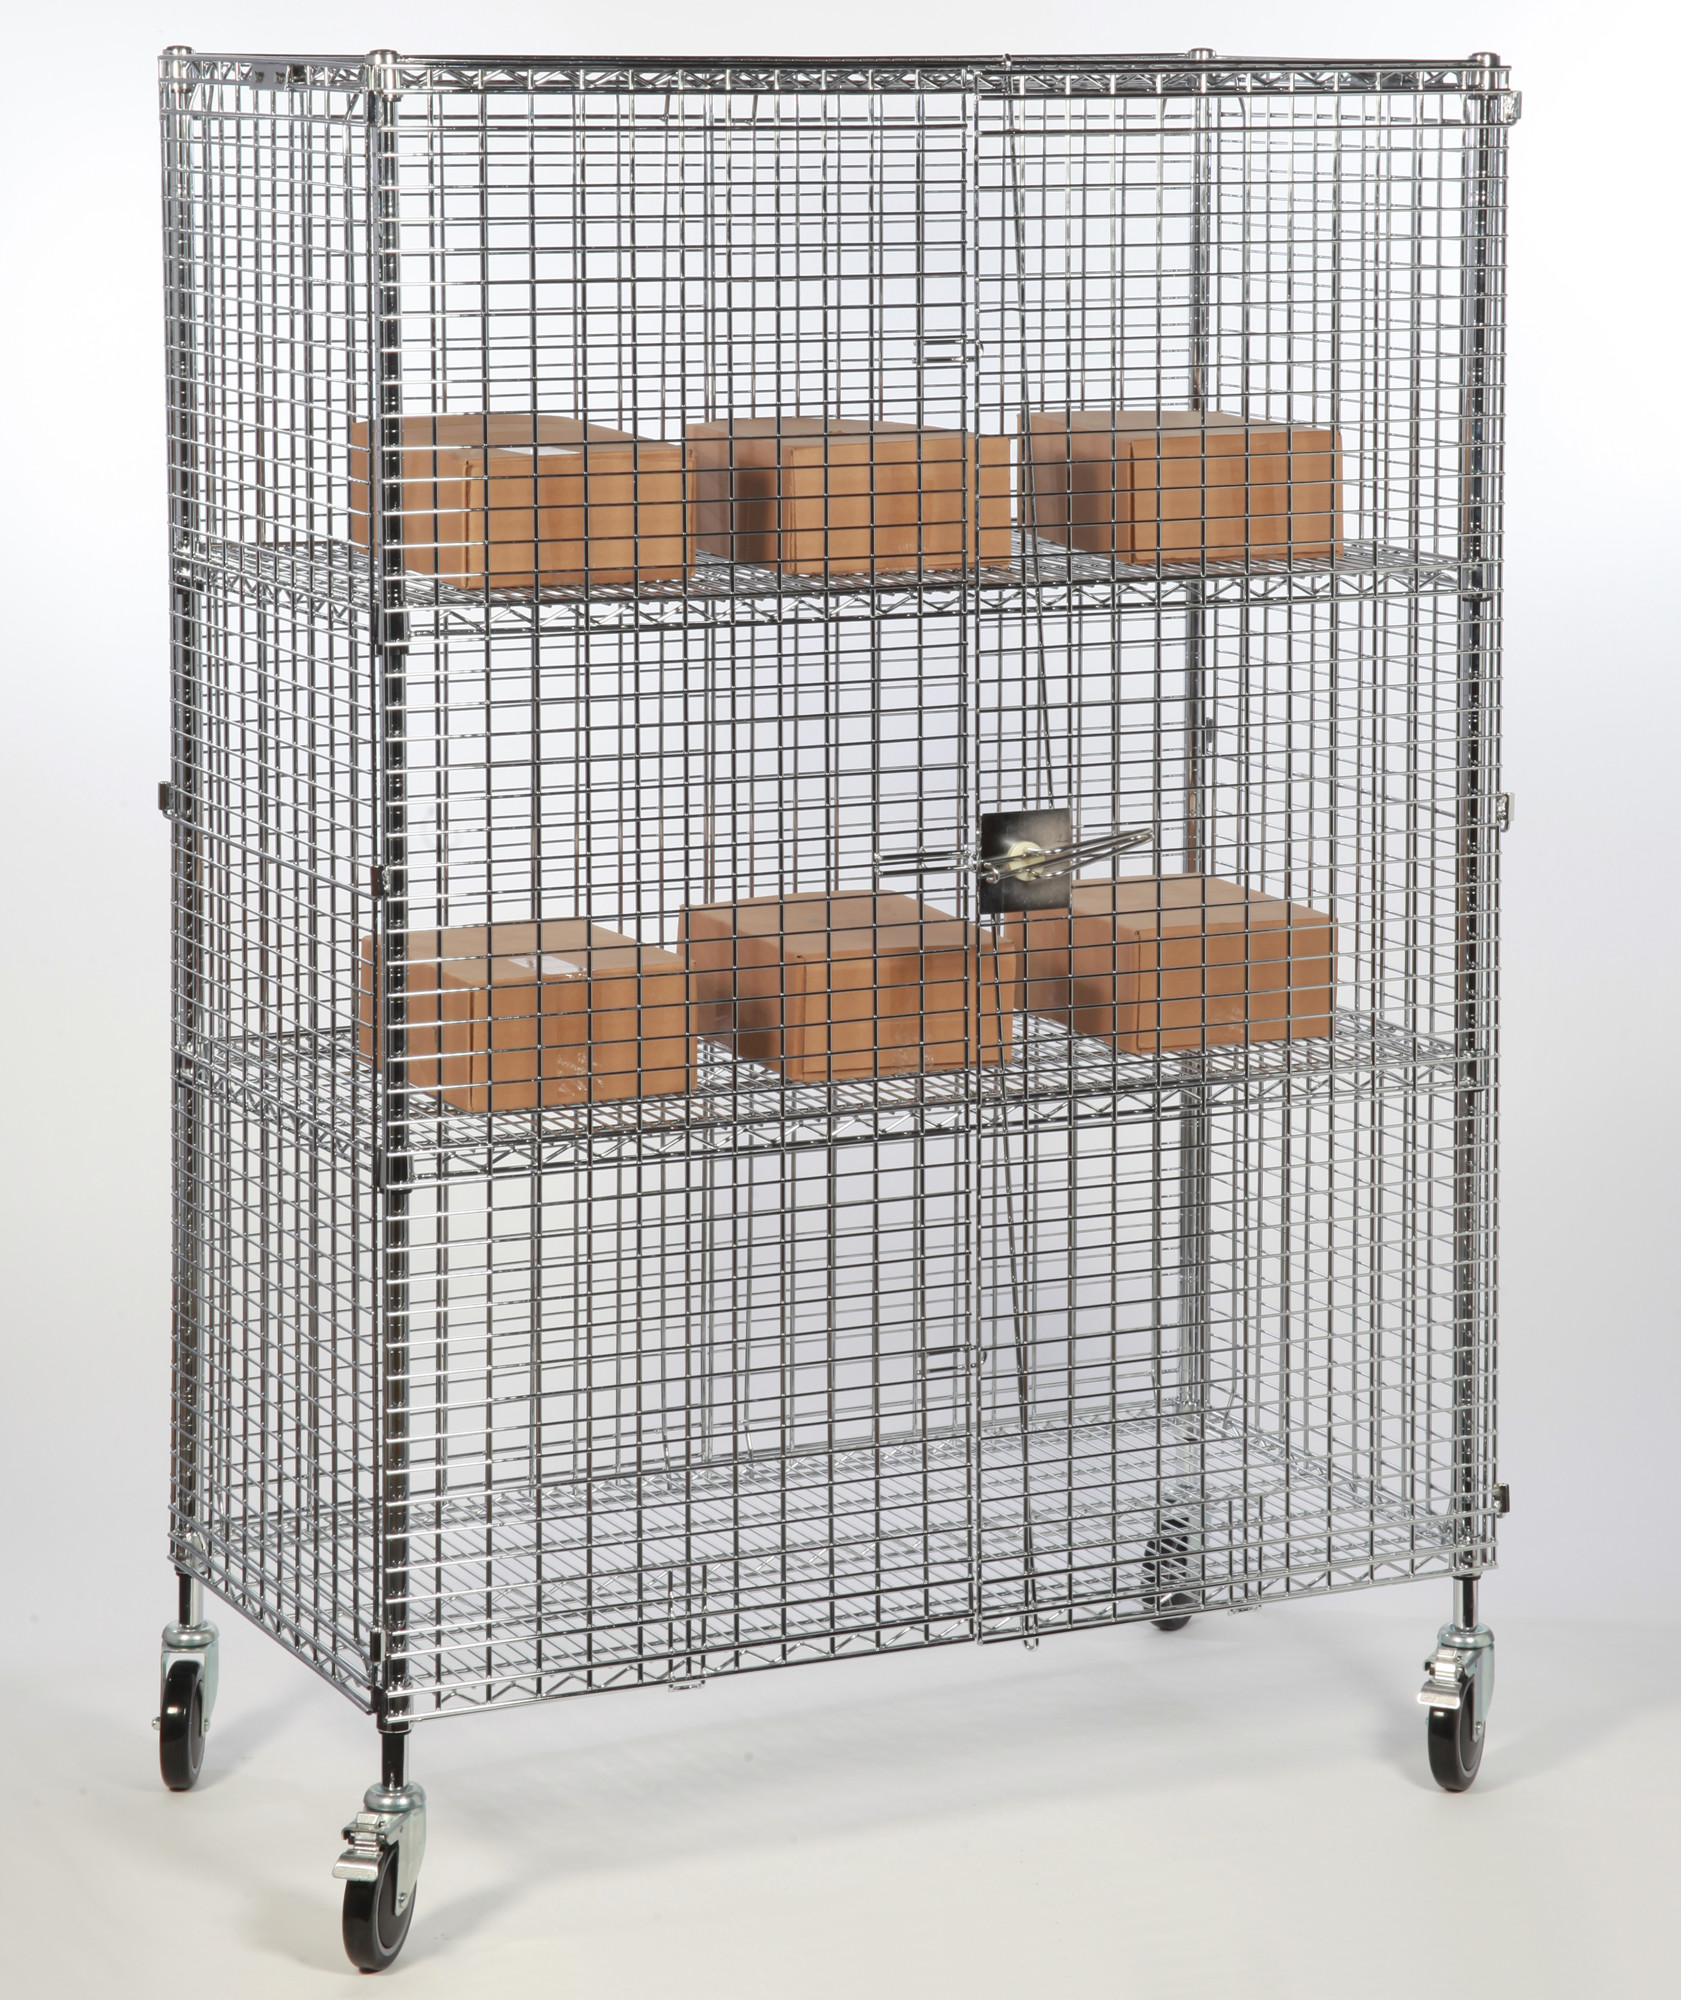 Mobile Chrome Mesh Security Cage Security Cages Direct